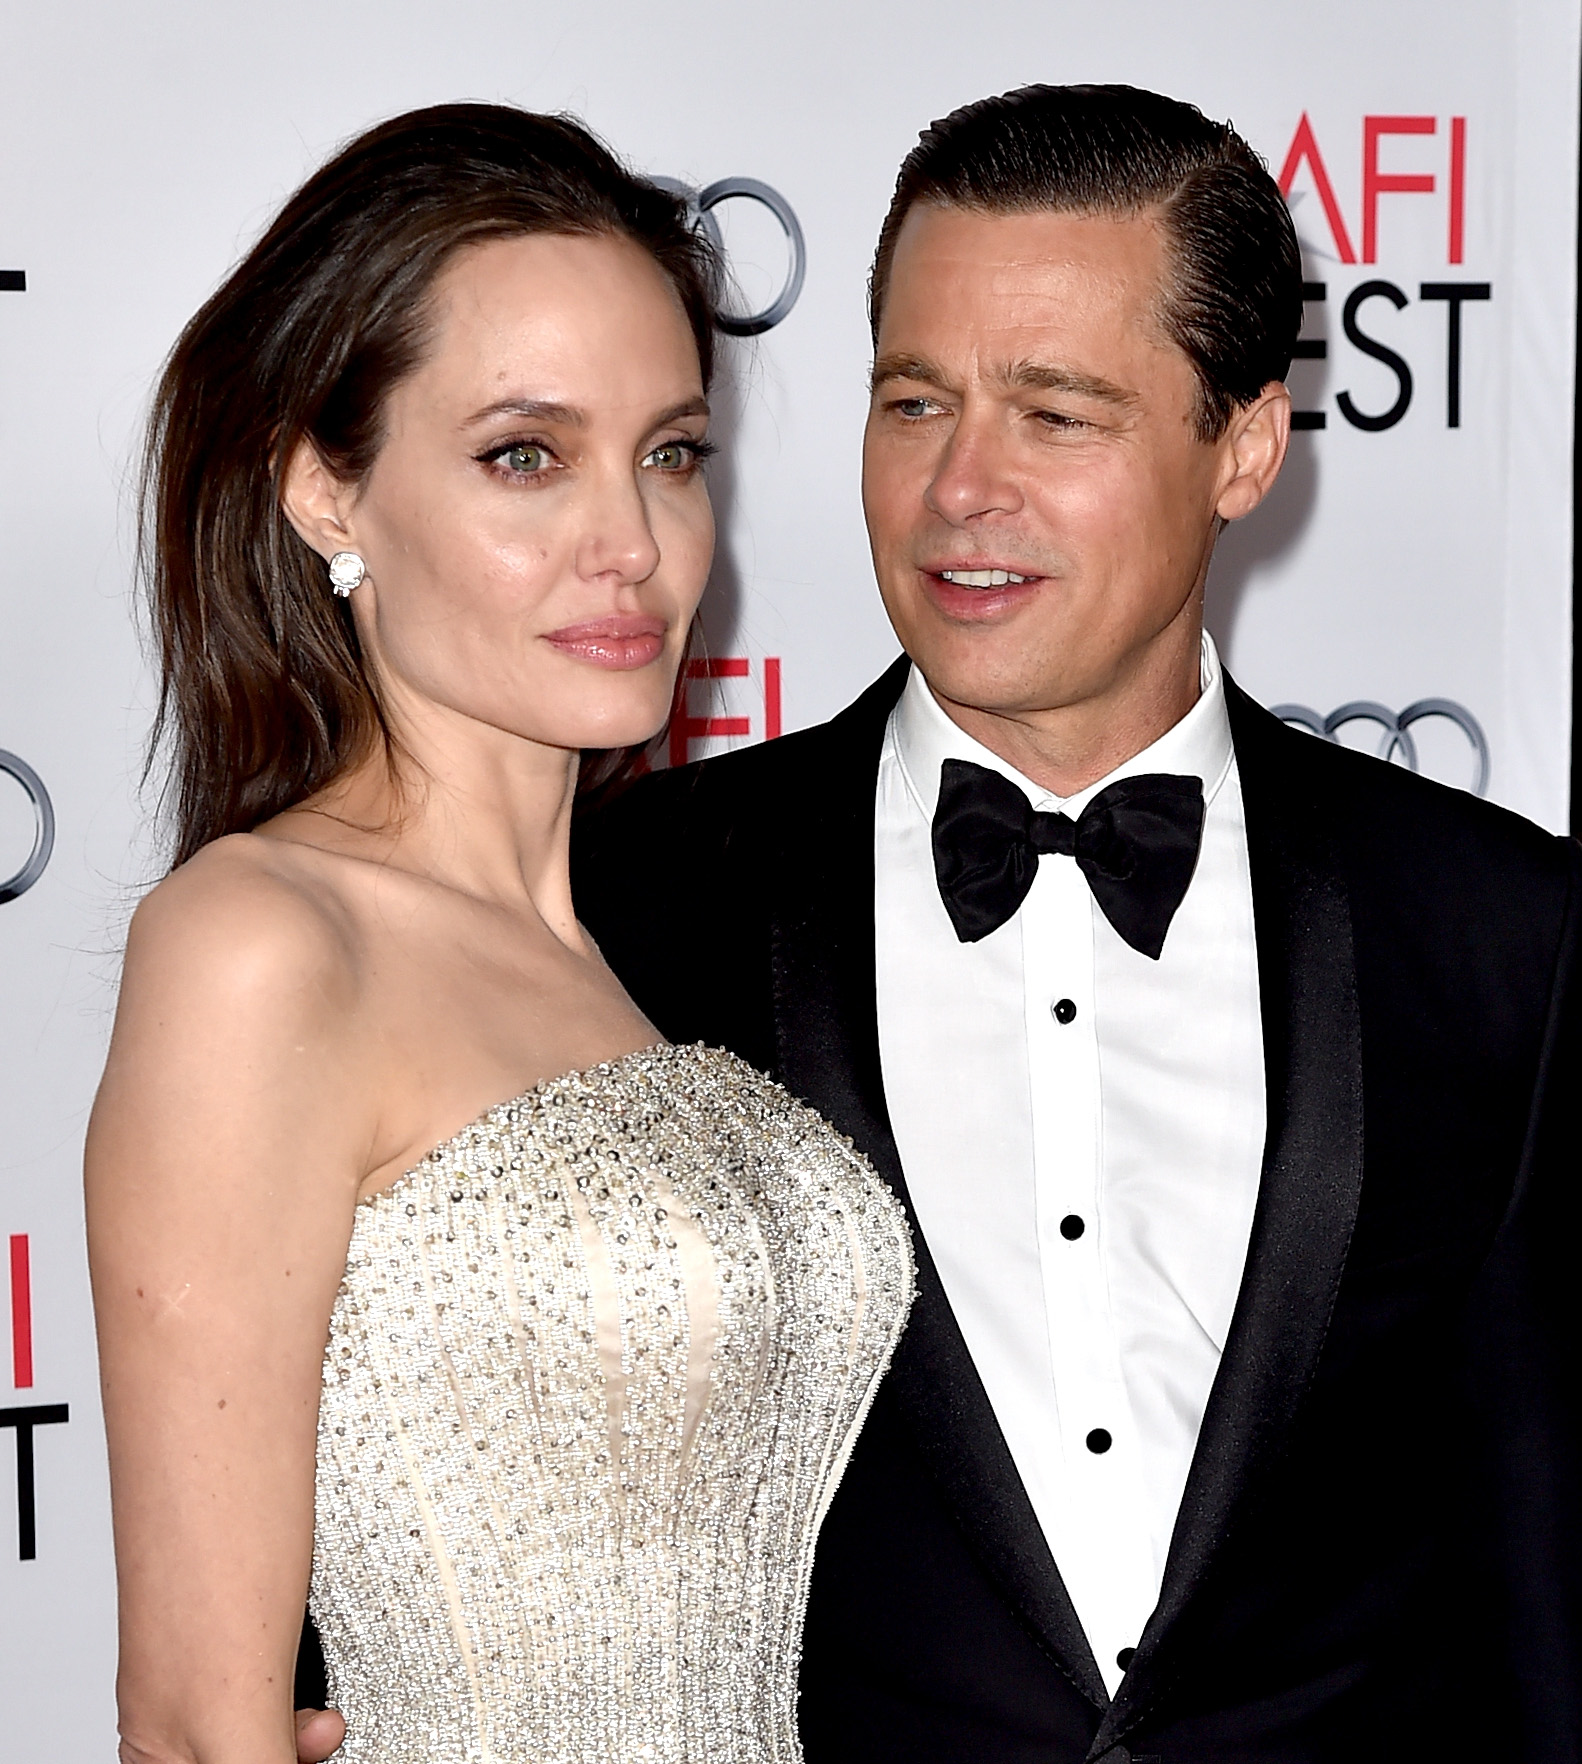 Angelina Jolie with ex husband Brad Pitt in Los Angeles in 2015 (Source: Getty Images)